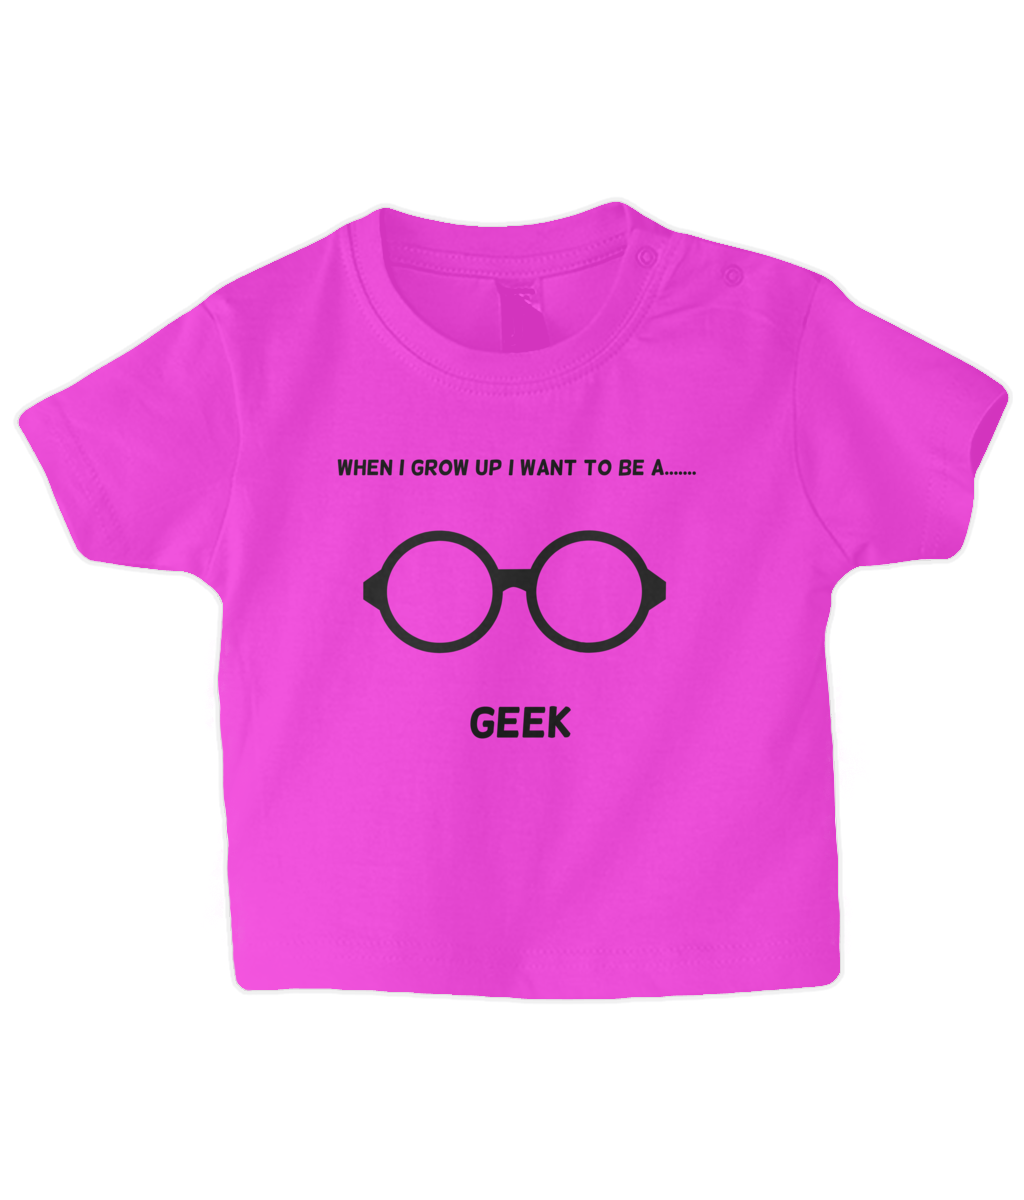 When I Grow Up I Want To Be A Geek - infant's t-shirt